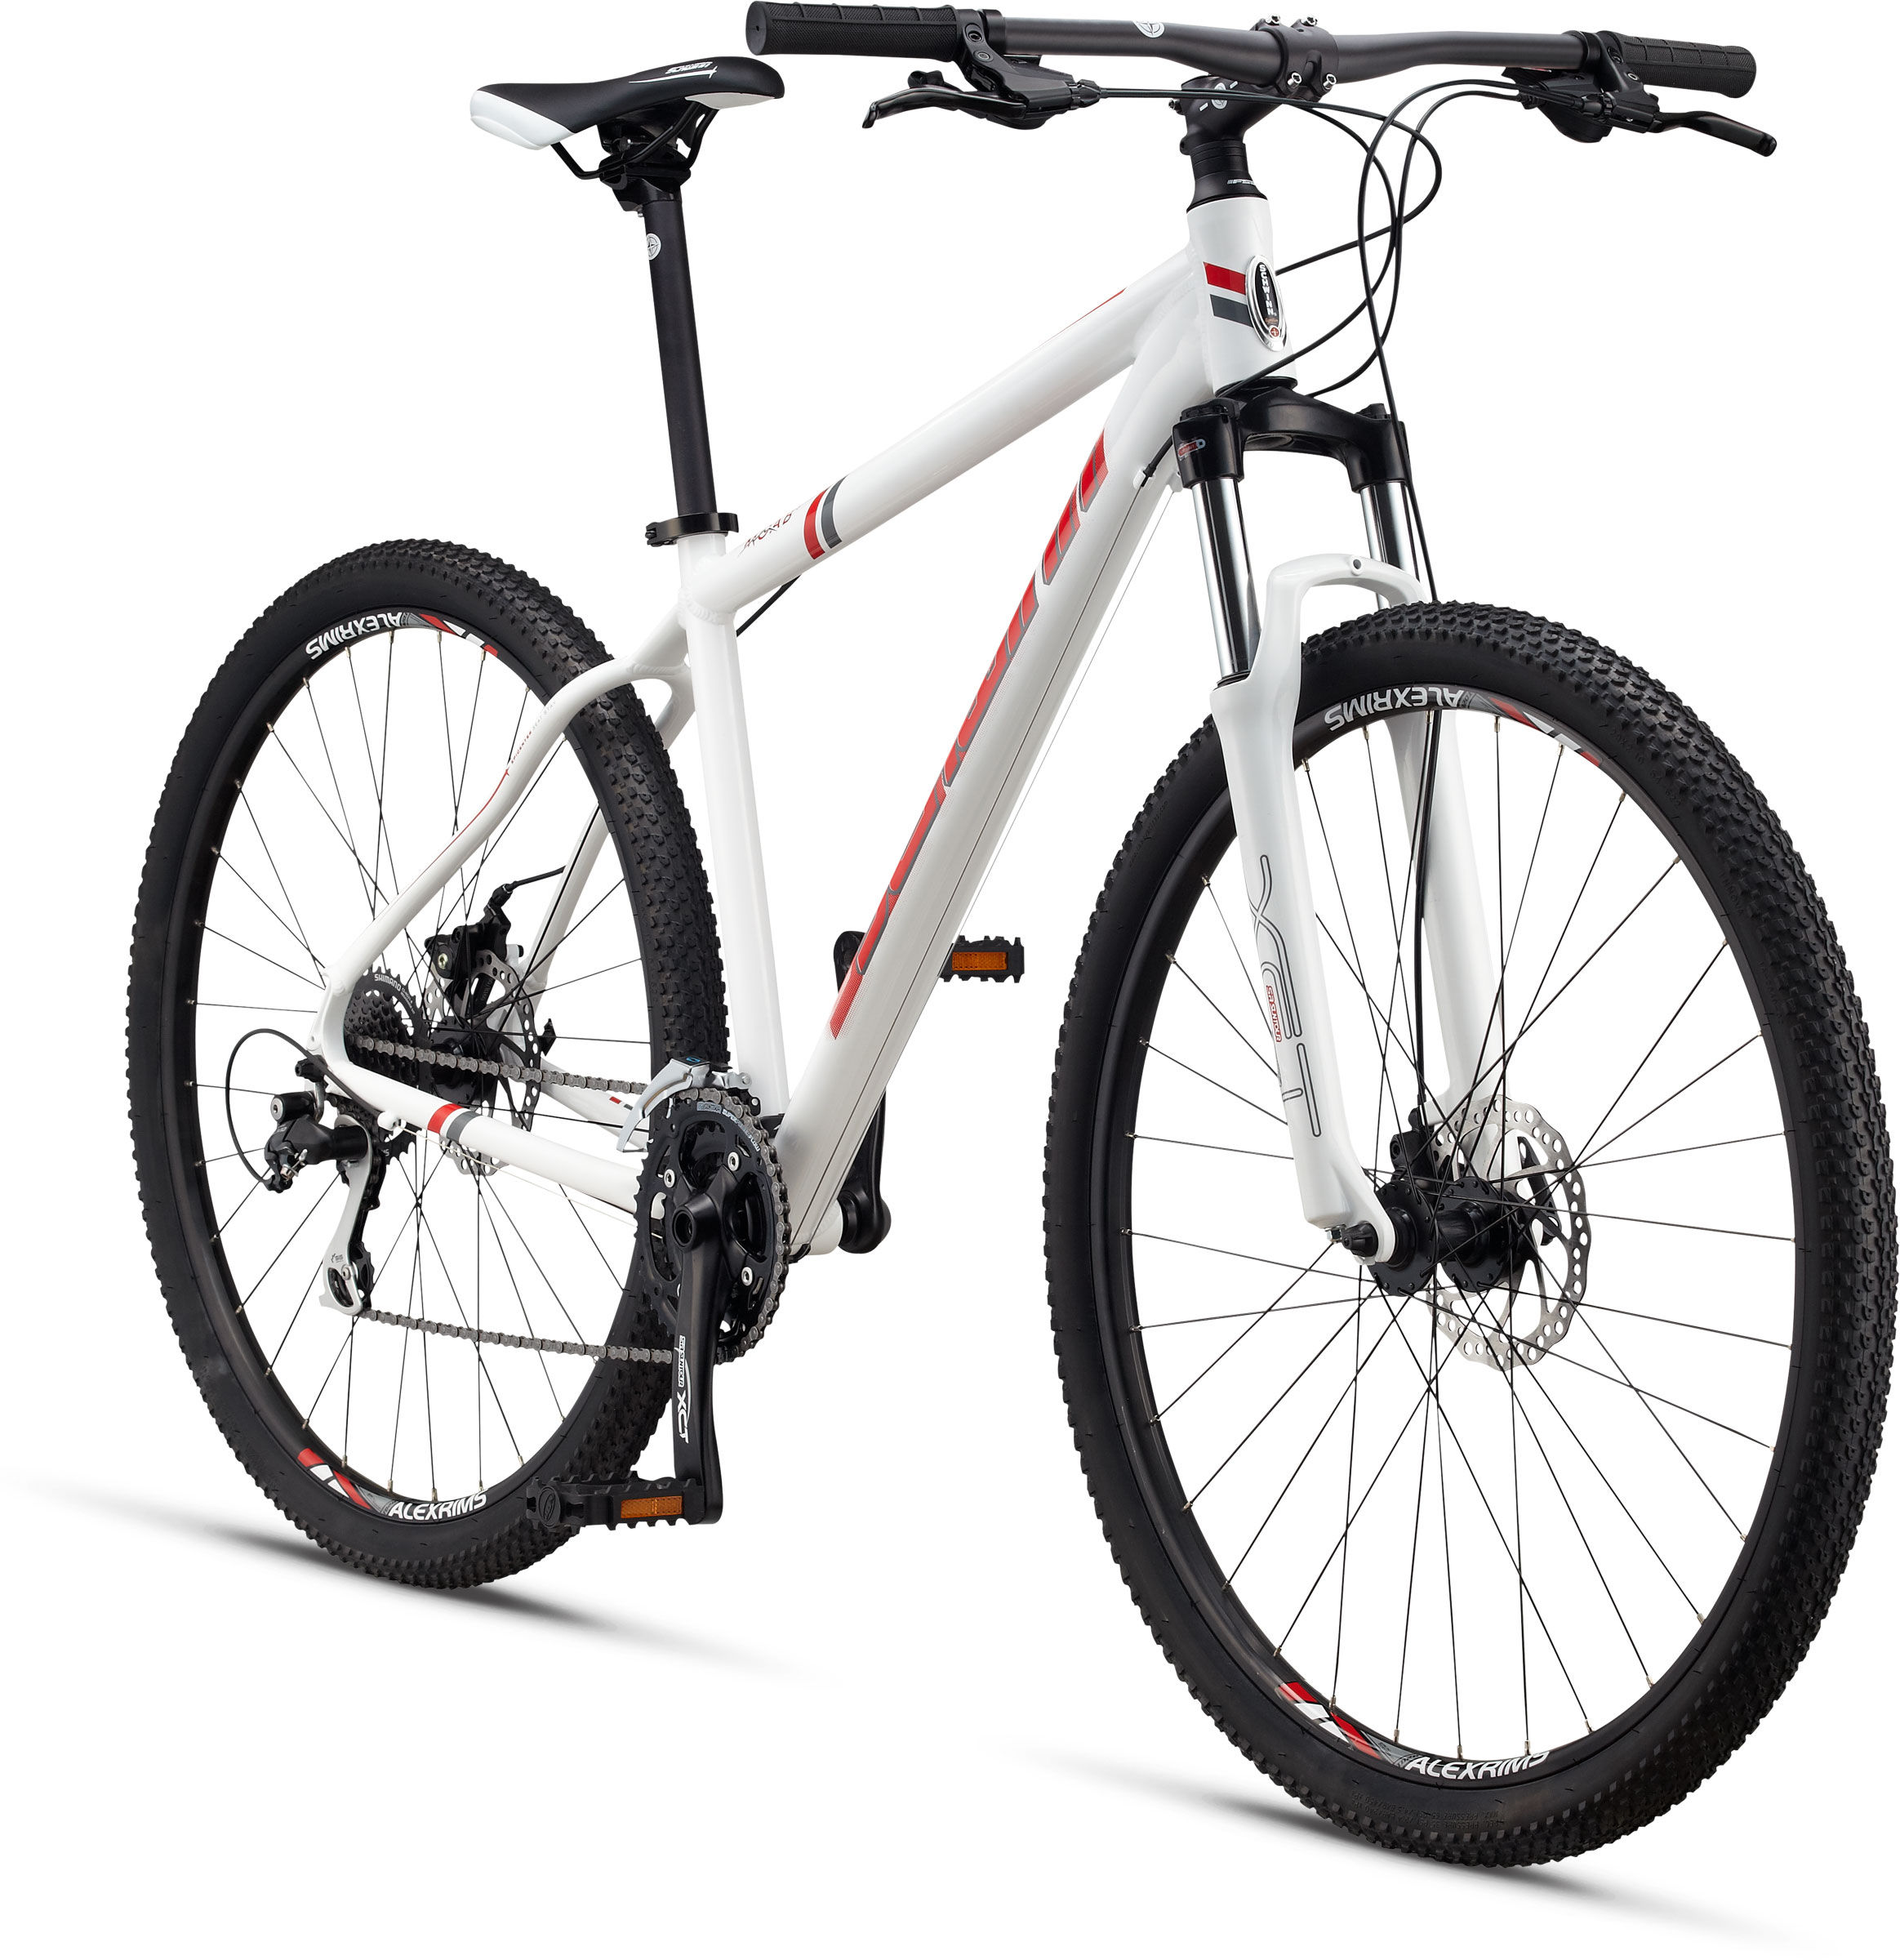 Schwinn Moab 3 - Bikes, Parts, Accessories and Clothing  Full